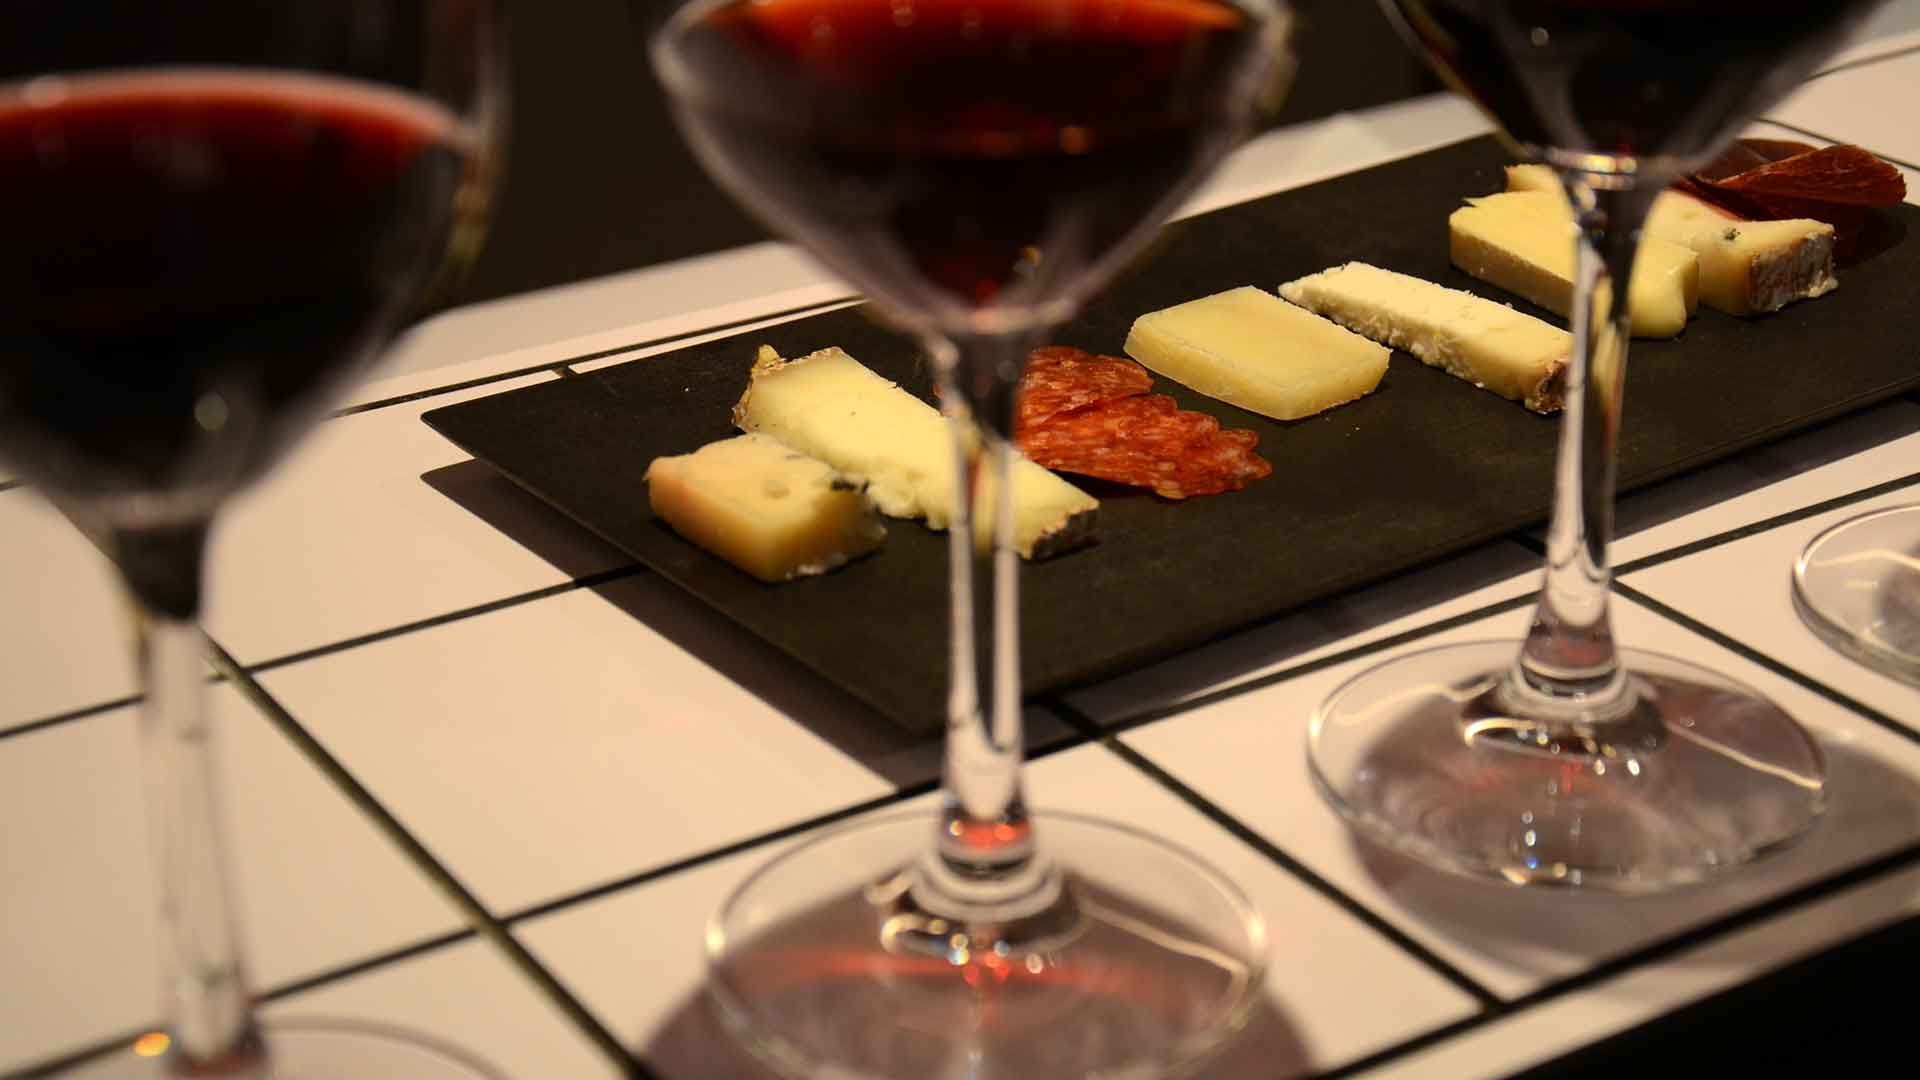 Southern Italy: Wine, Cheese, and Charcuterie